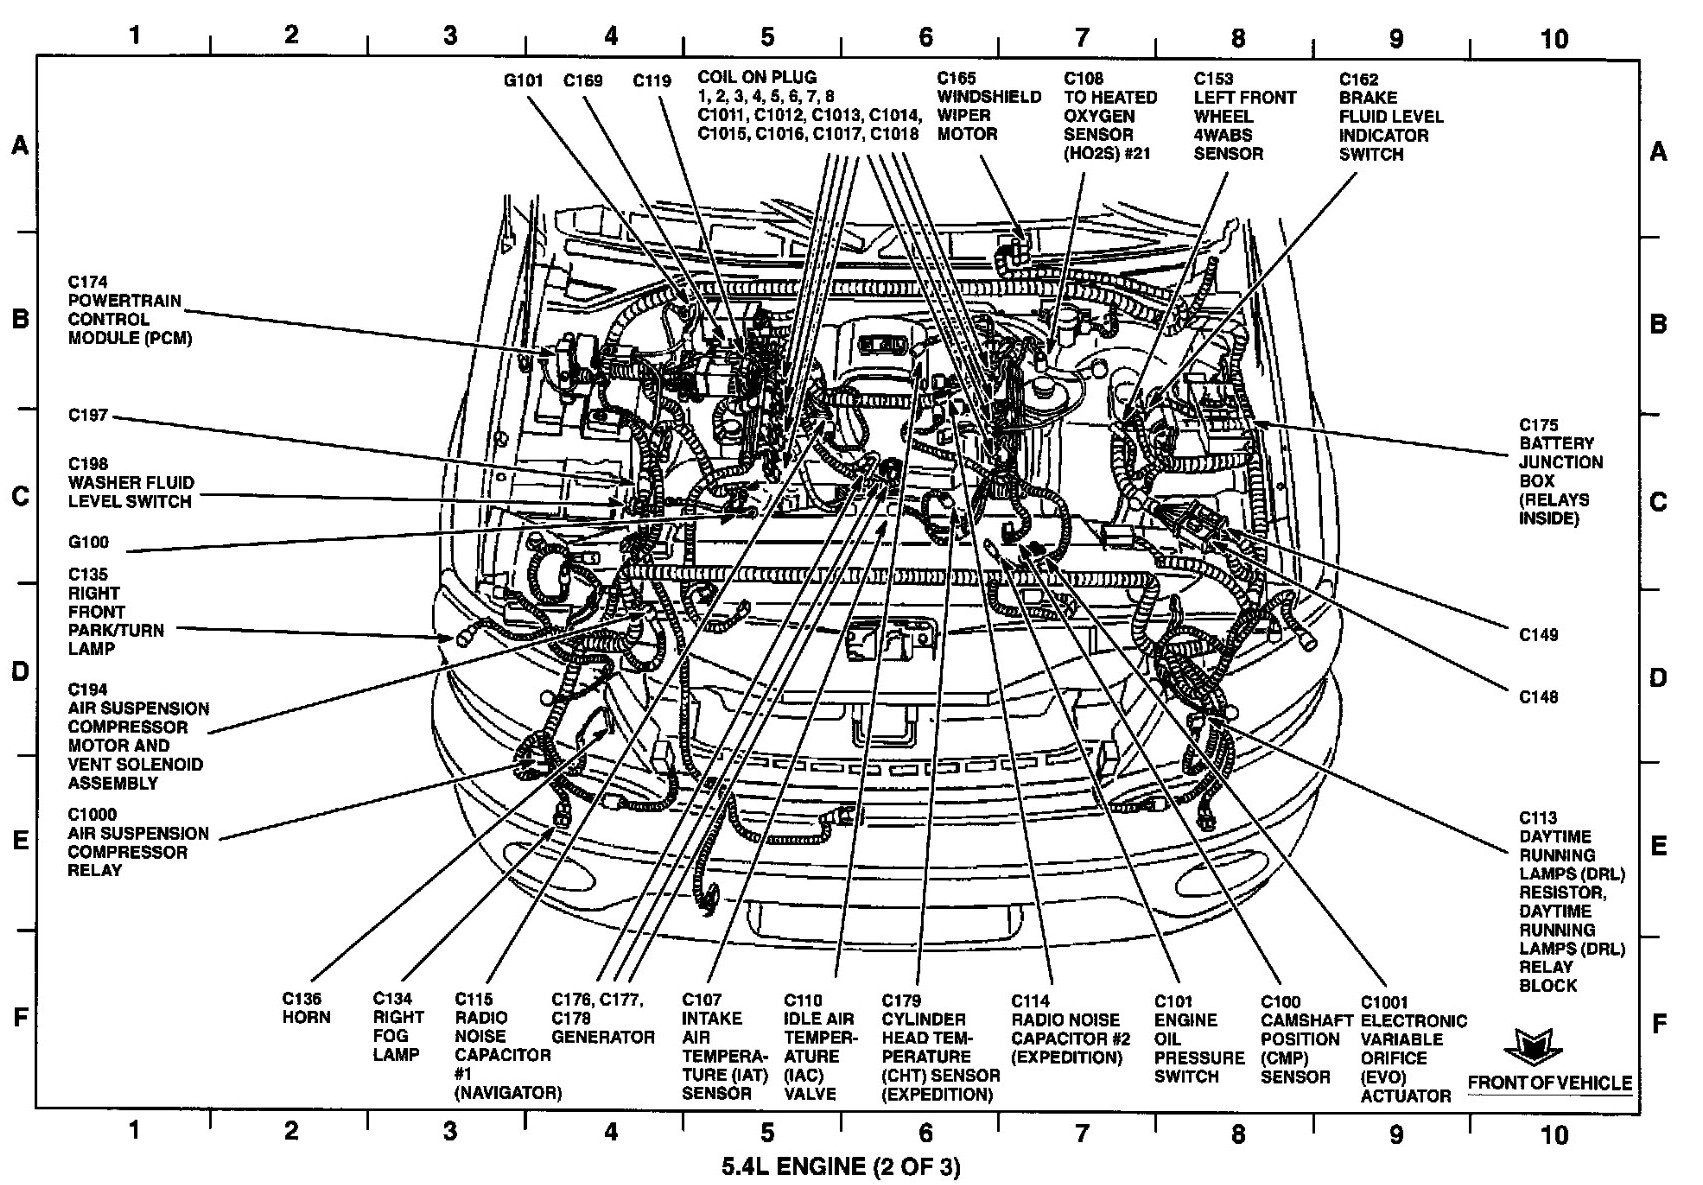 hight resolution of 2014 ford focus engine diagram wiring diagram view ford focus 2013 engine bay diagram 2013 ford focus engine diagram